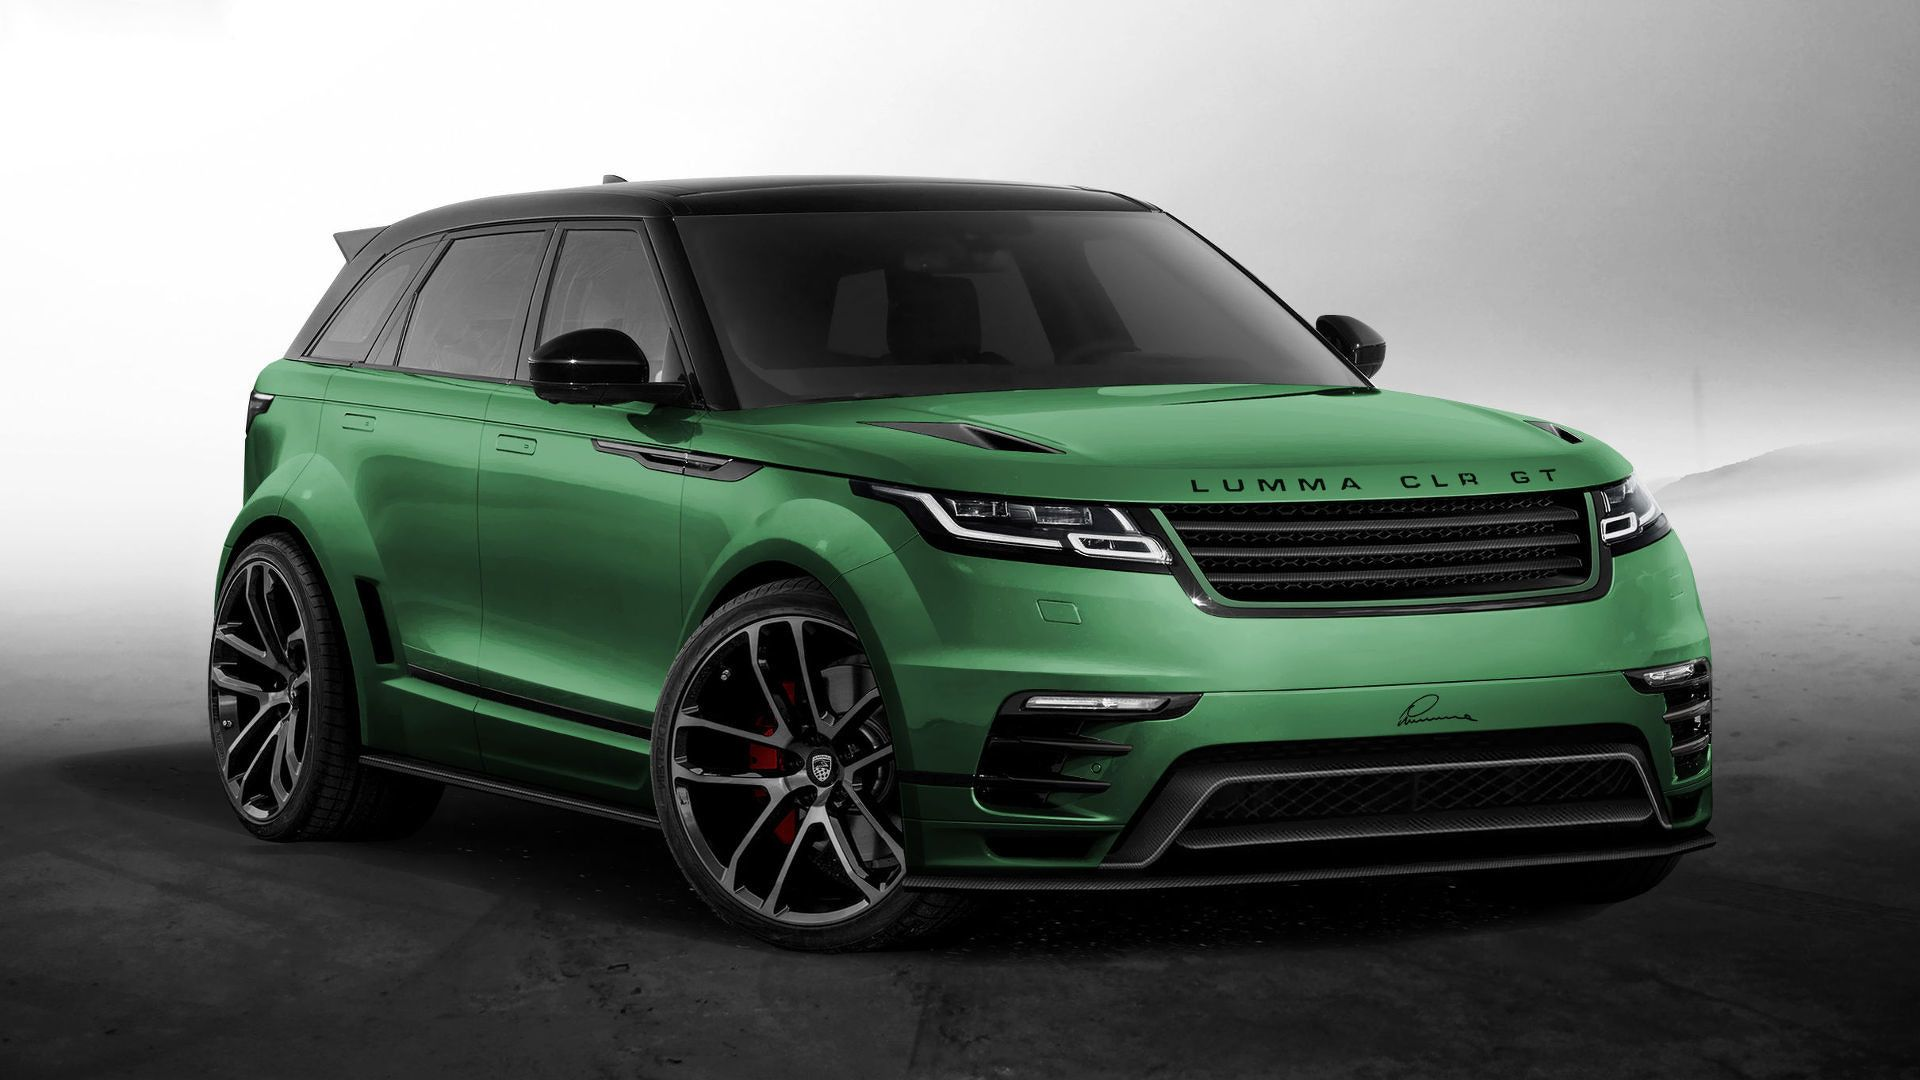 Range Rover Velar In A Wide Body Kit Soon after Range Rover Velar got launched tuning pany Lumma Design has managed to offer a digital render of a